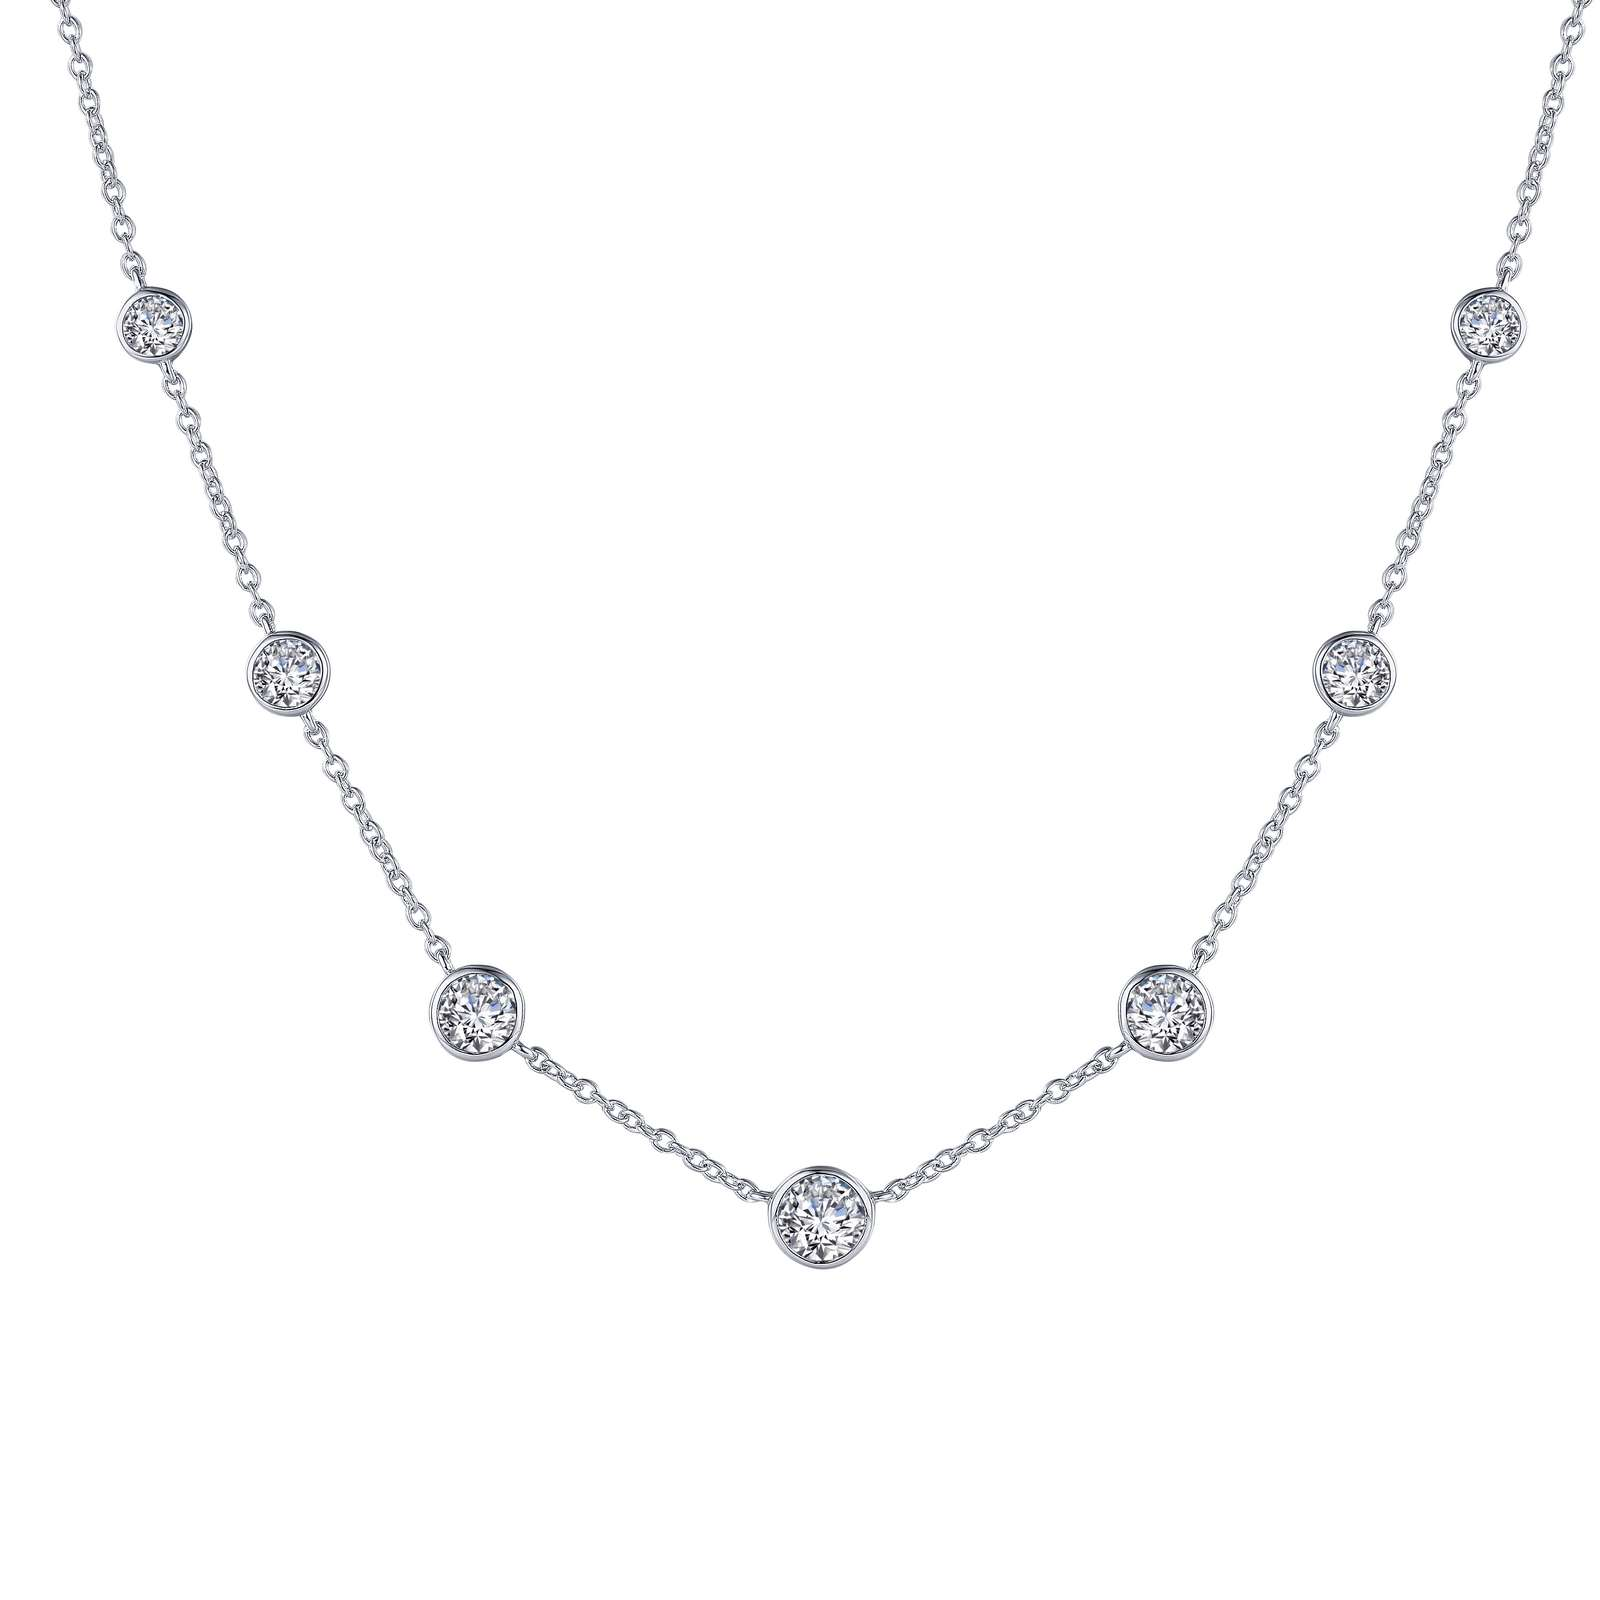 7 Symbols Of Joy Simulated Diamond Platinum Bonded Necklace by Lafonn